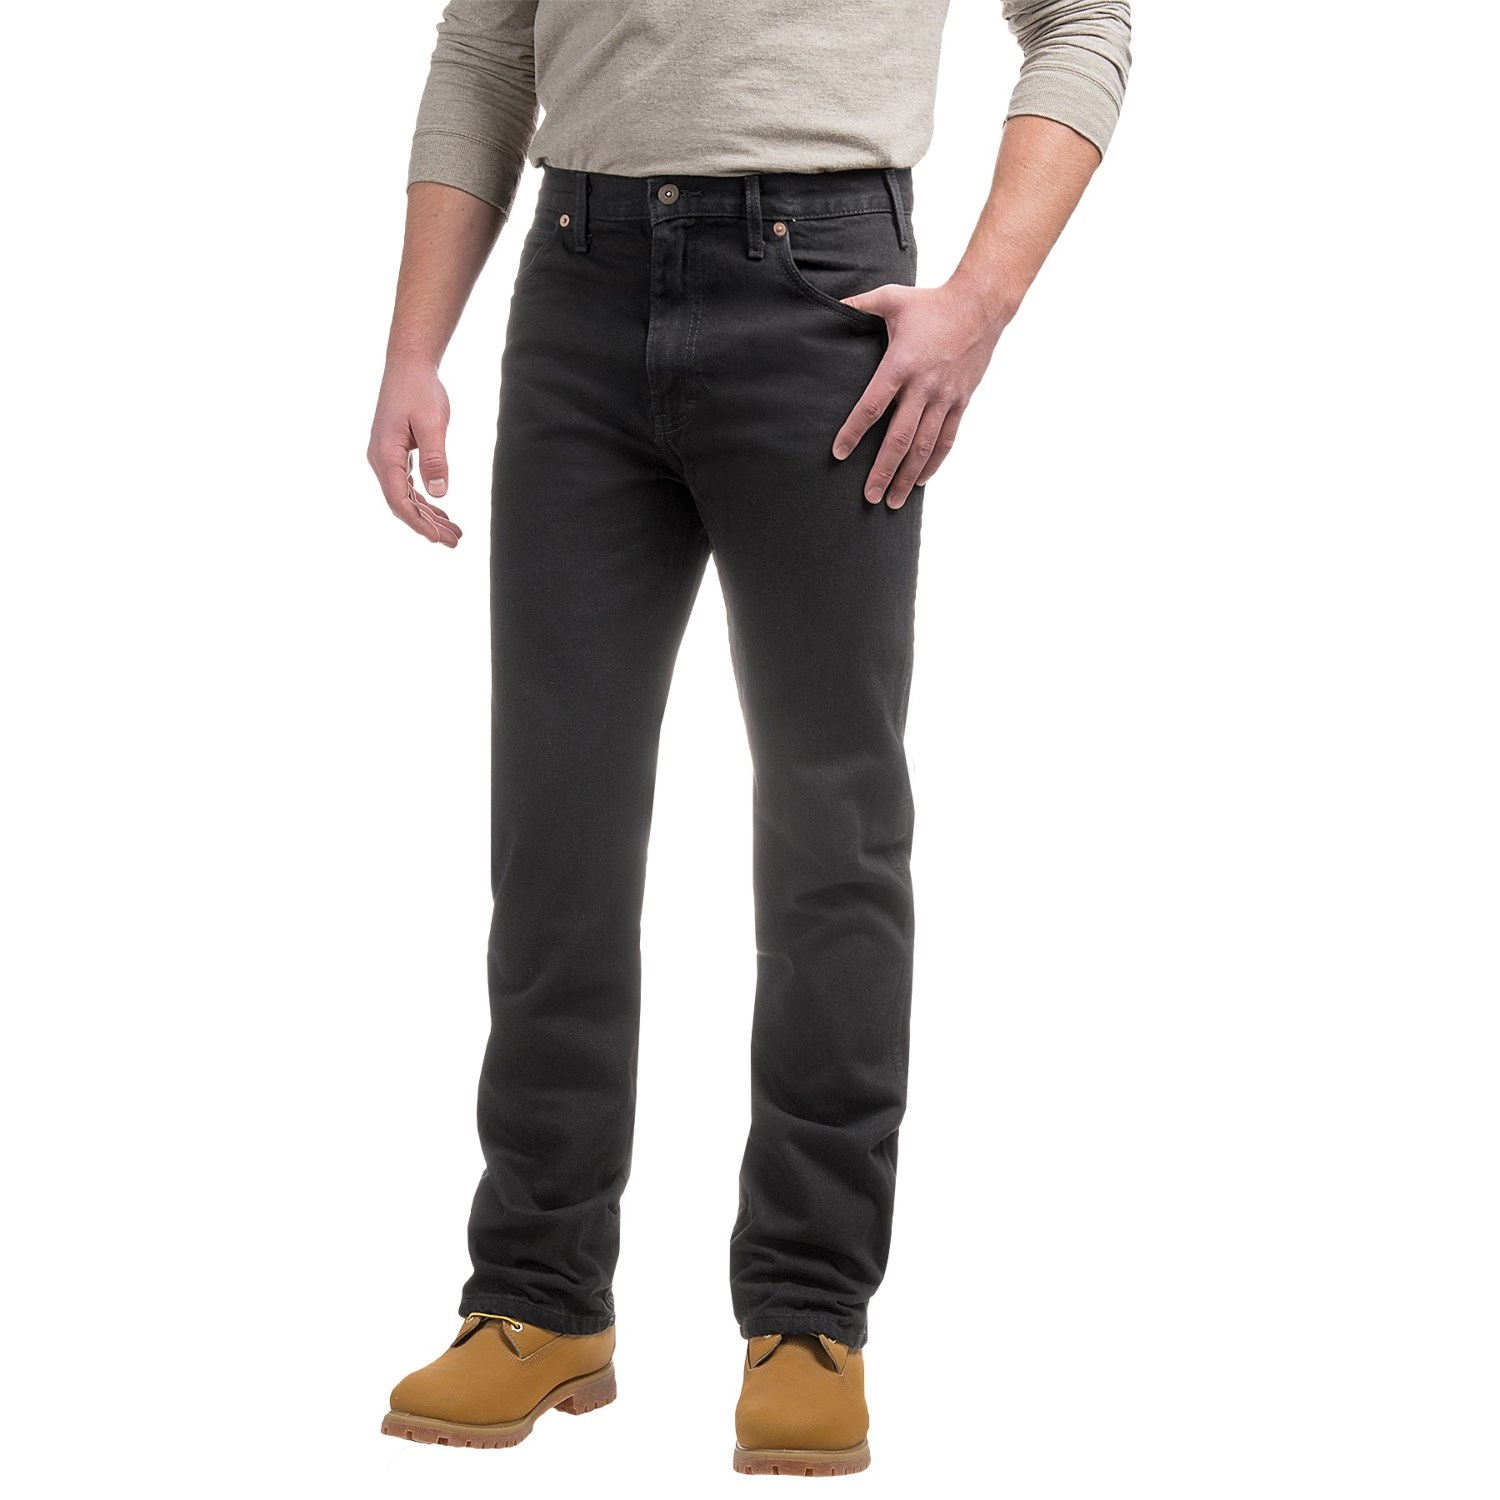 Dickies Regular Fit Bootcut Jeans (For Men) - Save 62%